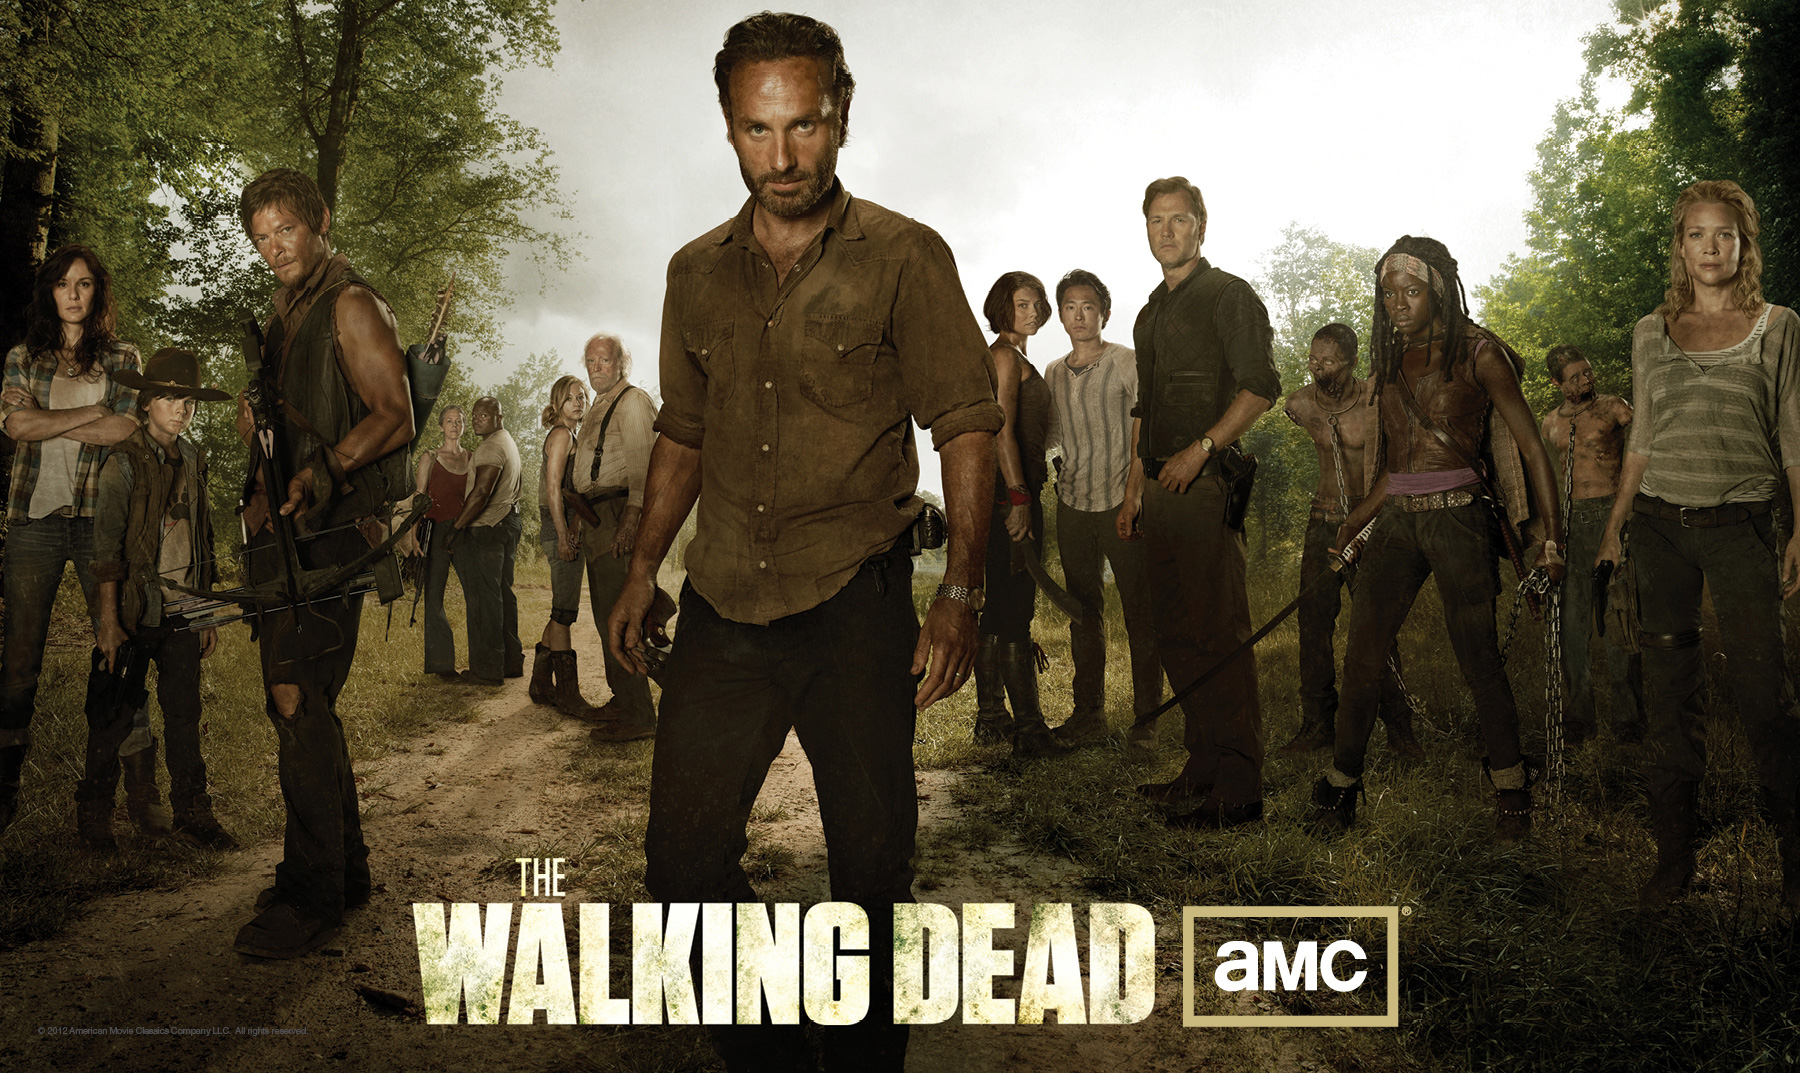 http://www.walking-dead.fr/wp-content/gallery/affiche-promo-the-walking-dead-saison-3/the-walking-dead-saison-3-affiche-promo-2.jpg